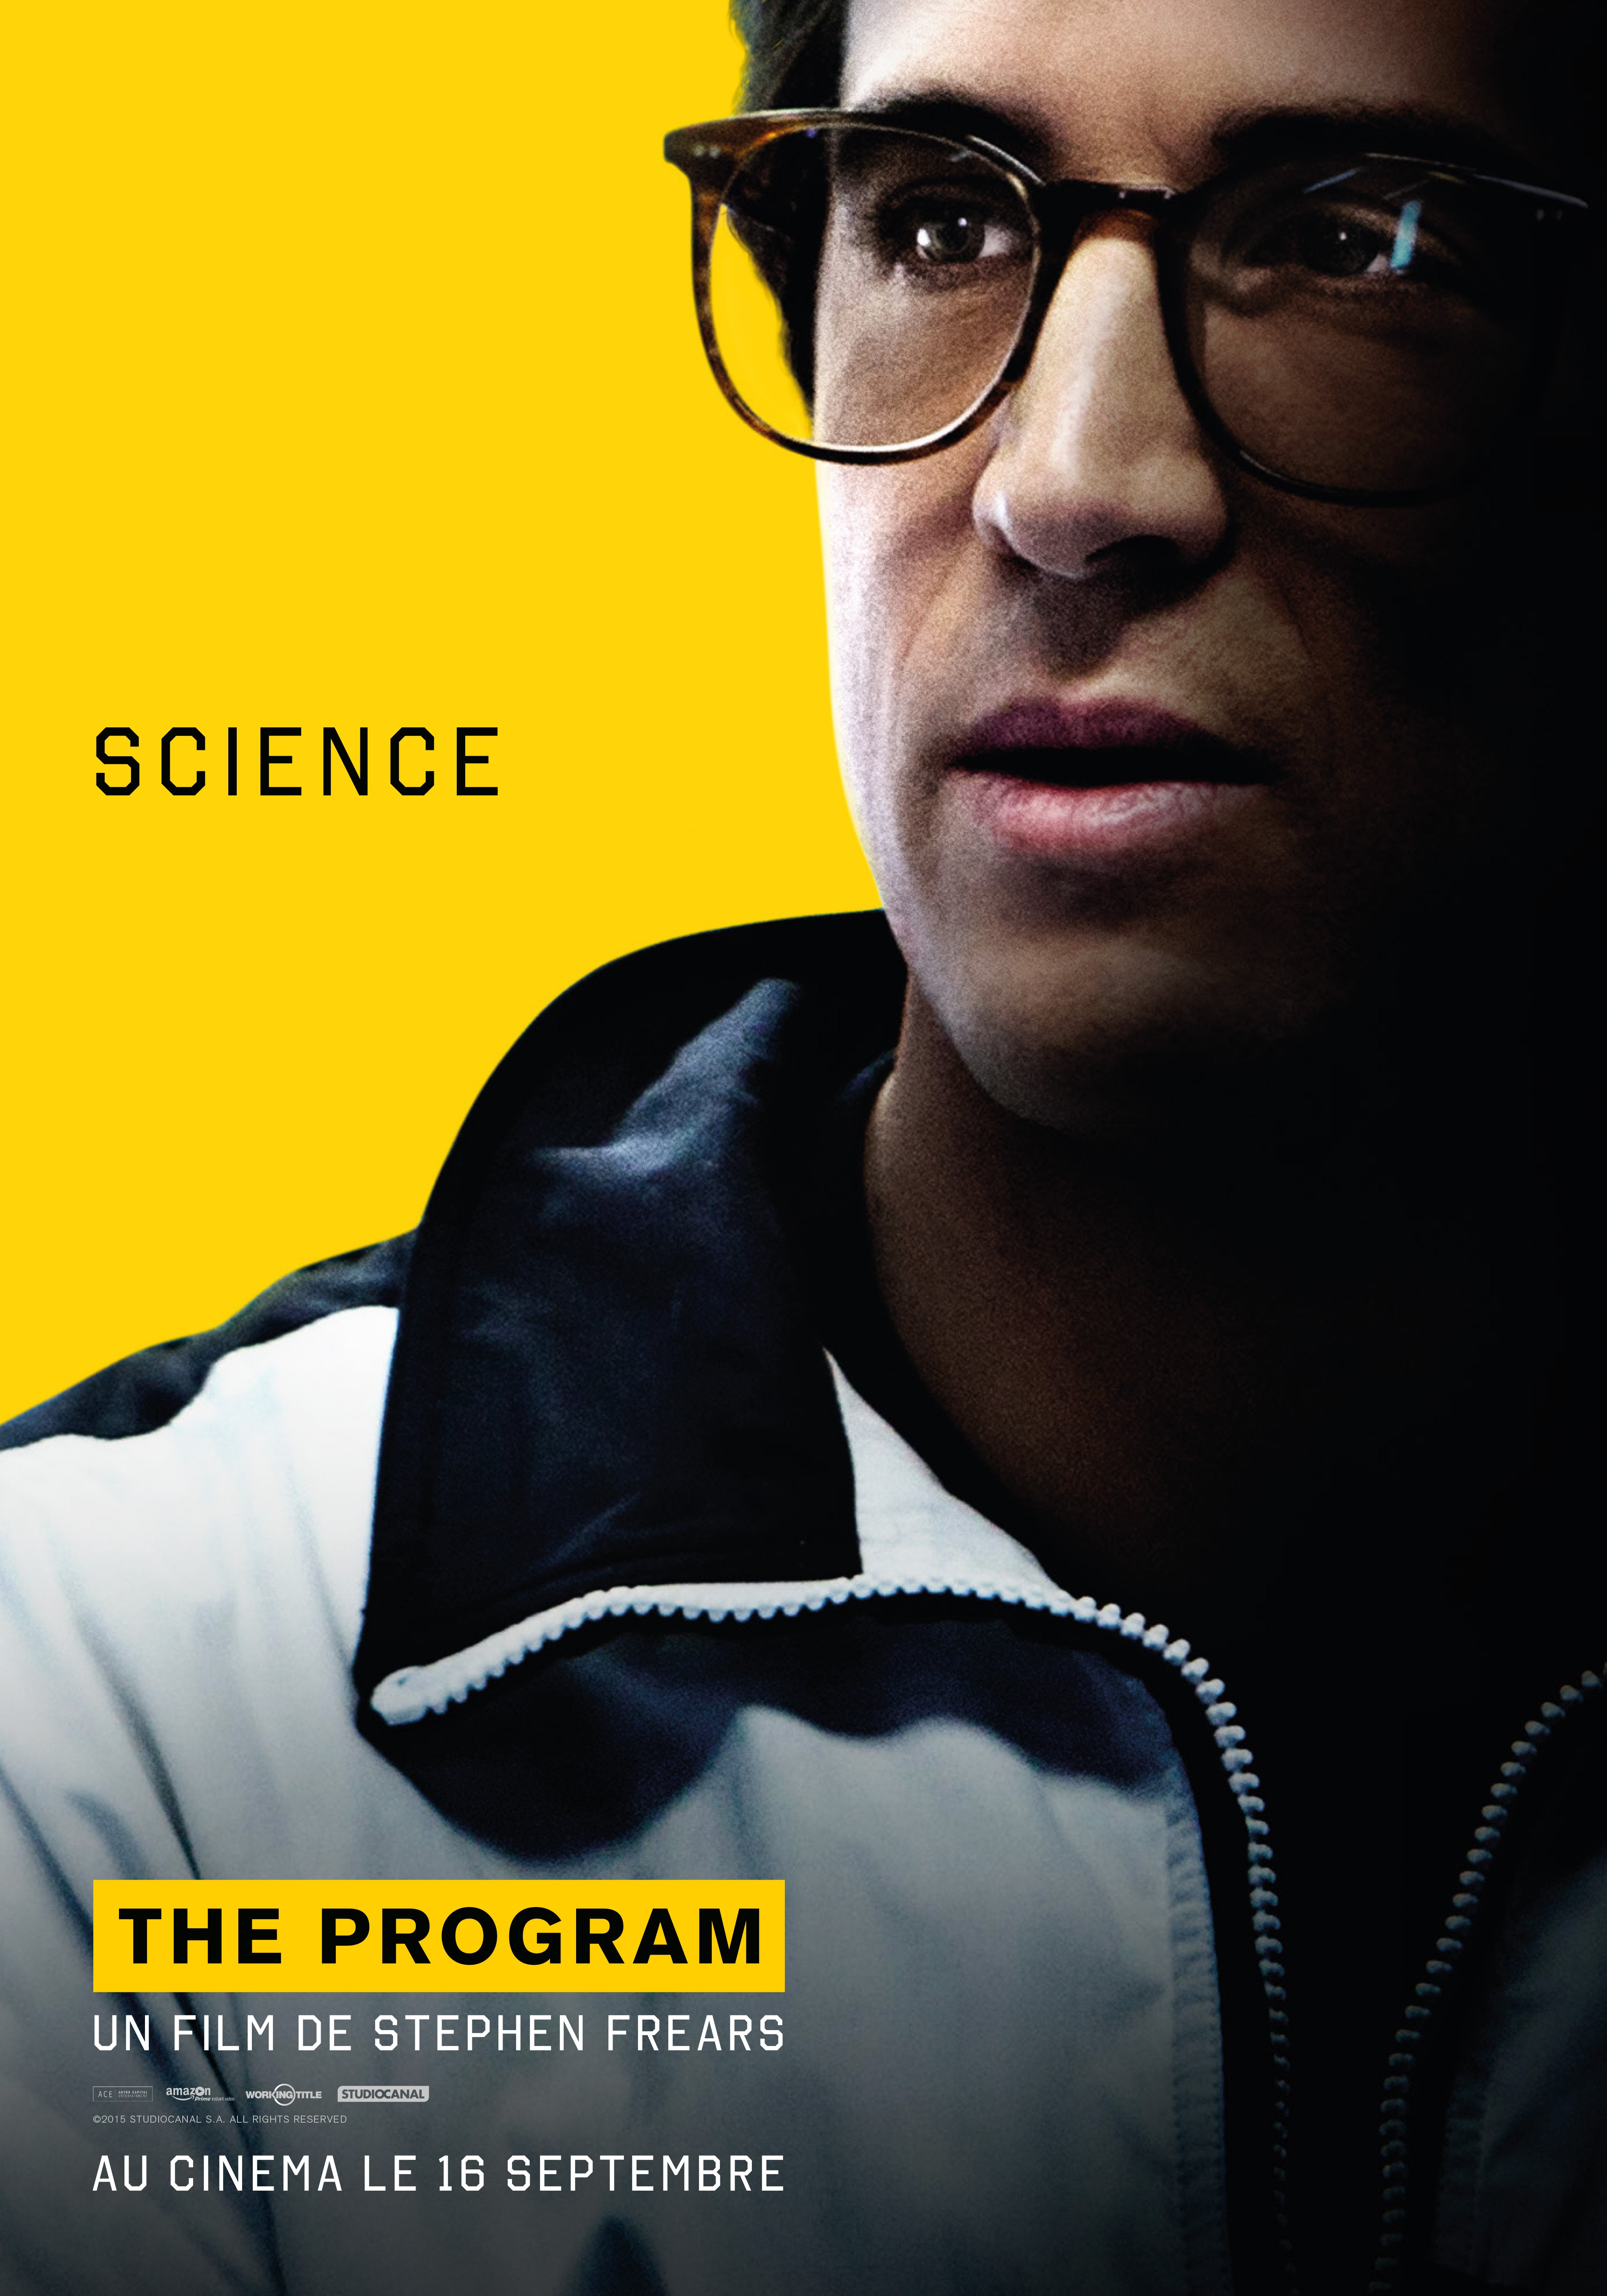 Affiche du film The Program réalisé par Stephen Frears avec Guillaume Canet.